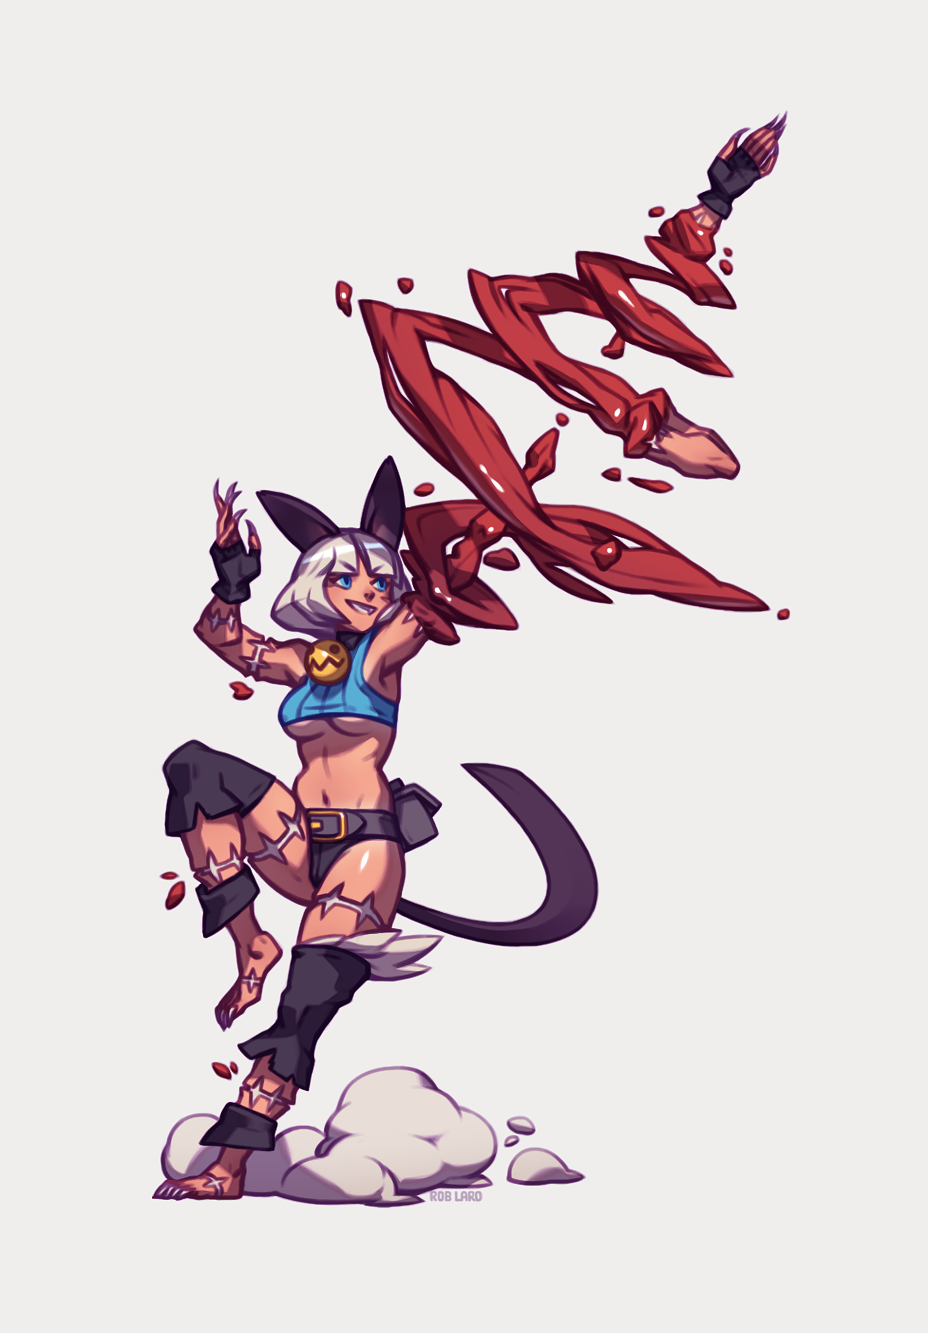 1girl animal_ears attack bare_shoulders bell bell_collar blood blue_eyes breasts cat_ears cat_tail collar crop_top dark_skin detached_leggings dust_cloud fingerless_gloves gloves highres midriff nadia_fortune rob_lara scar severed_hand short_hair simple_background skullgirls solo tail thighhighs underboob white_hair